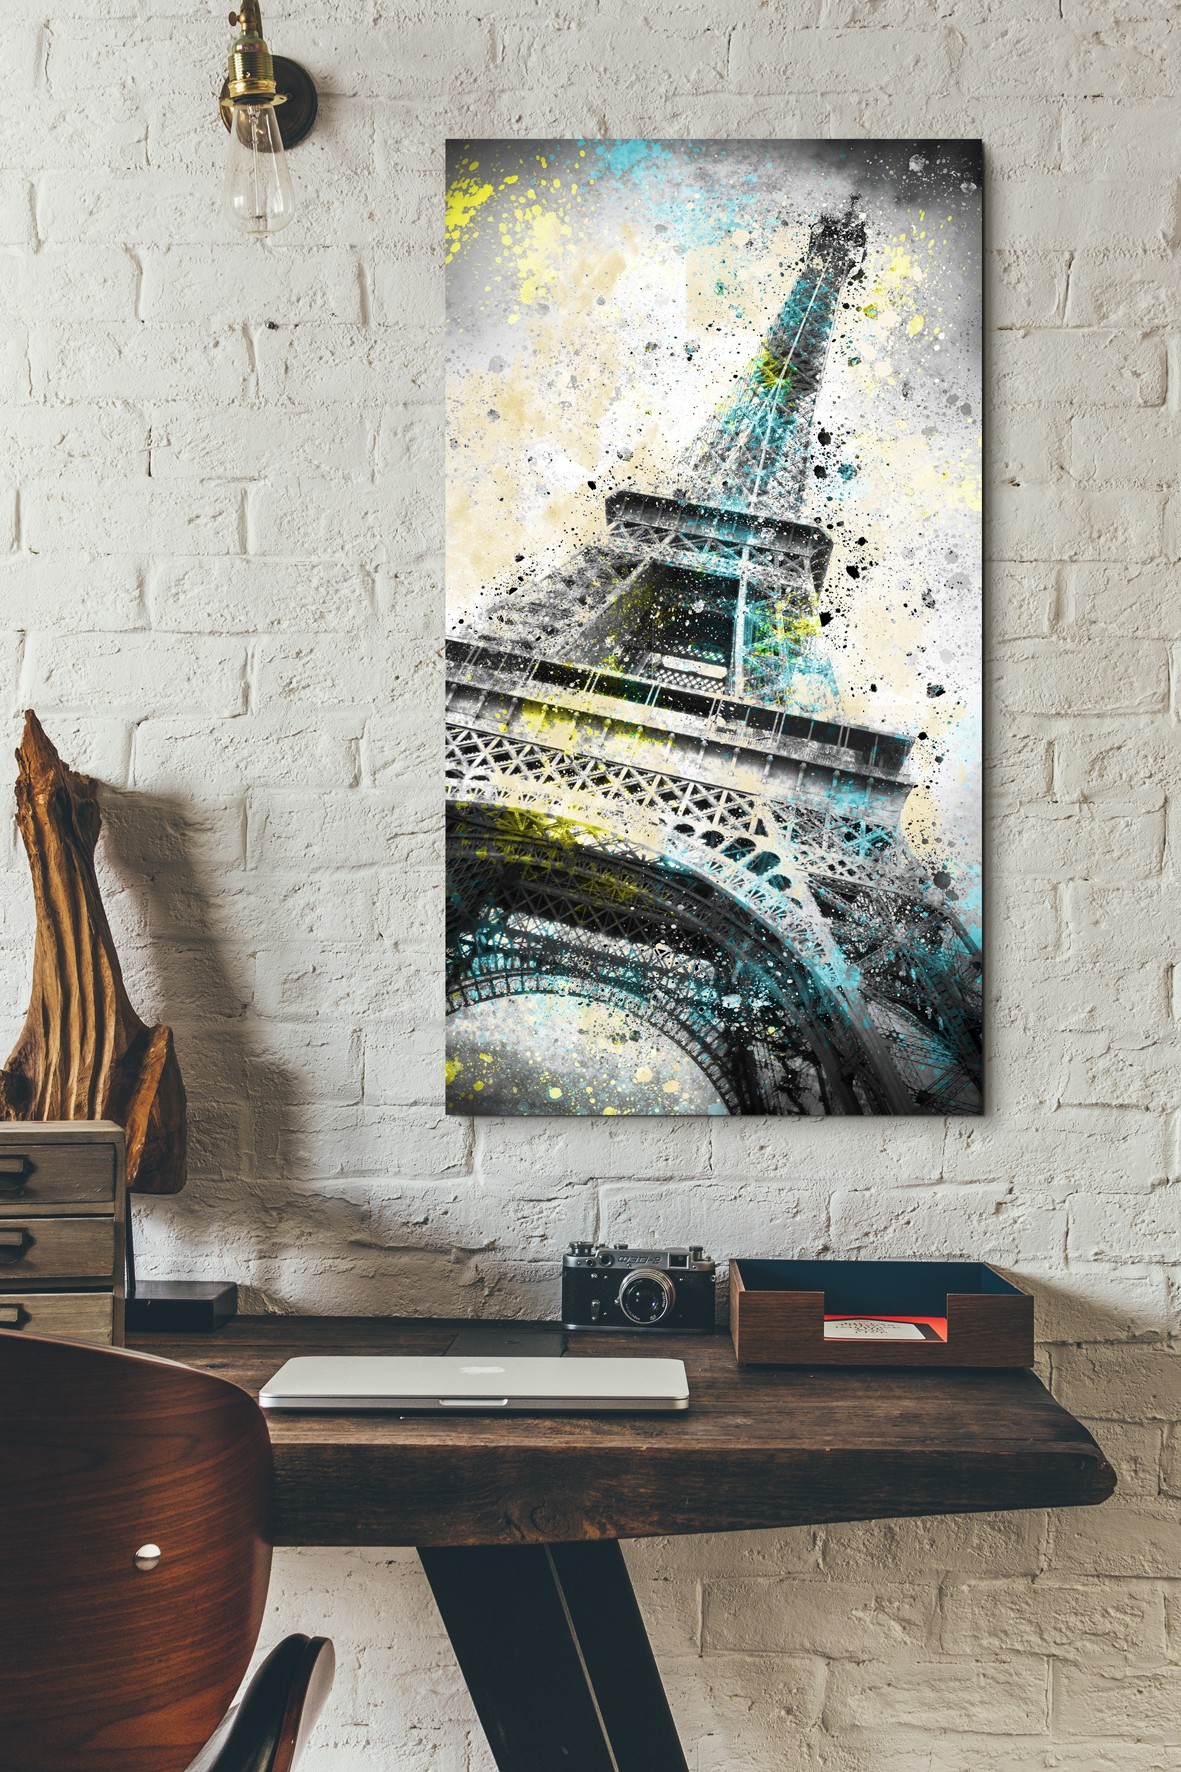 City-Art Paris Eiffel Tower IV - Pixels.com Onlineshop